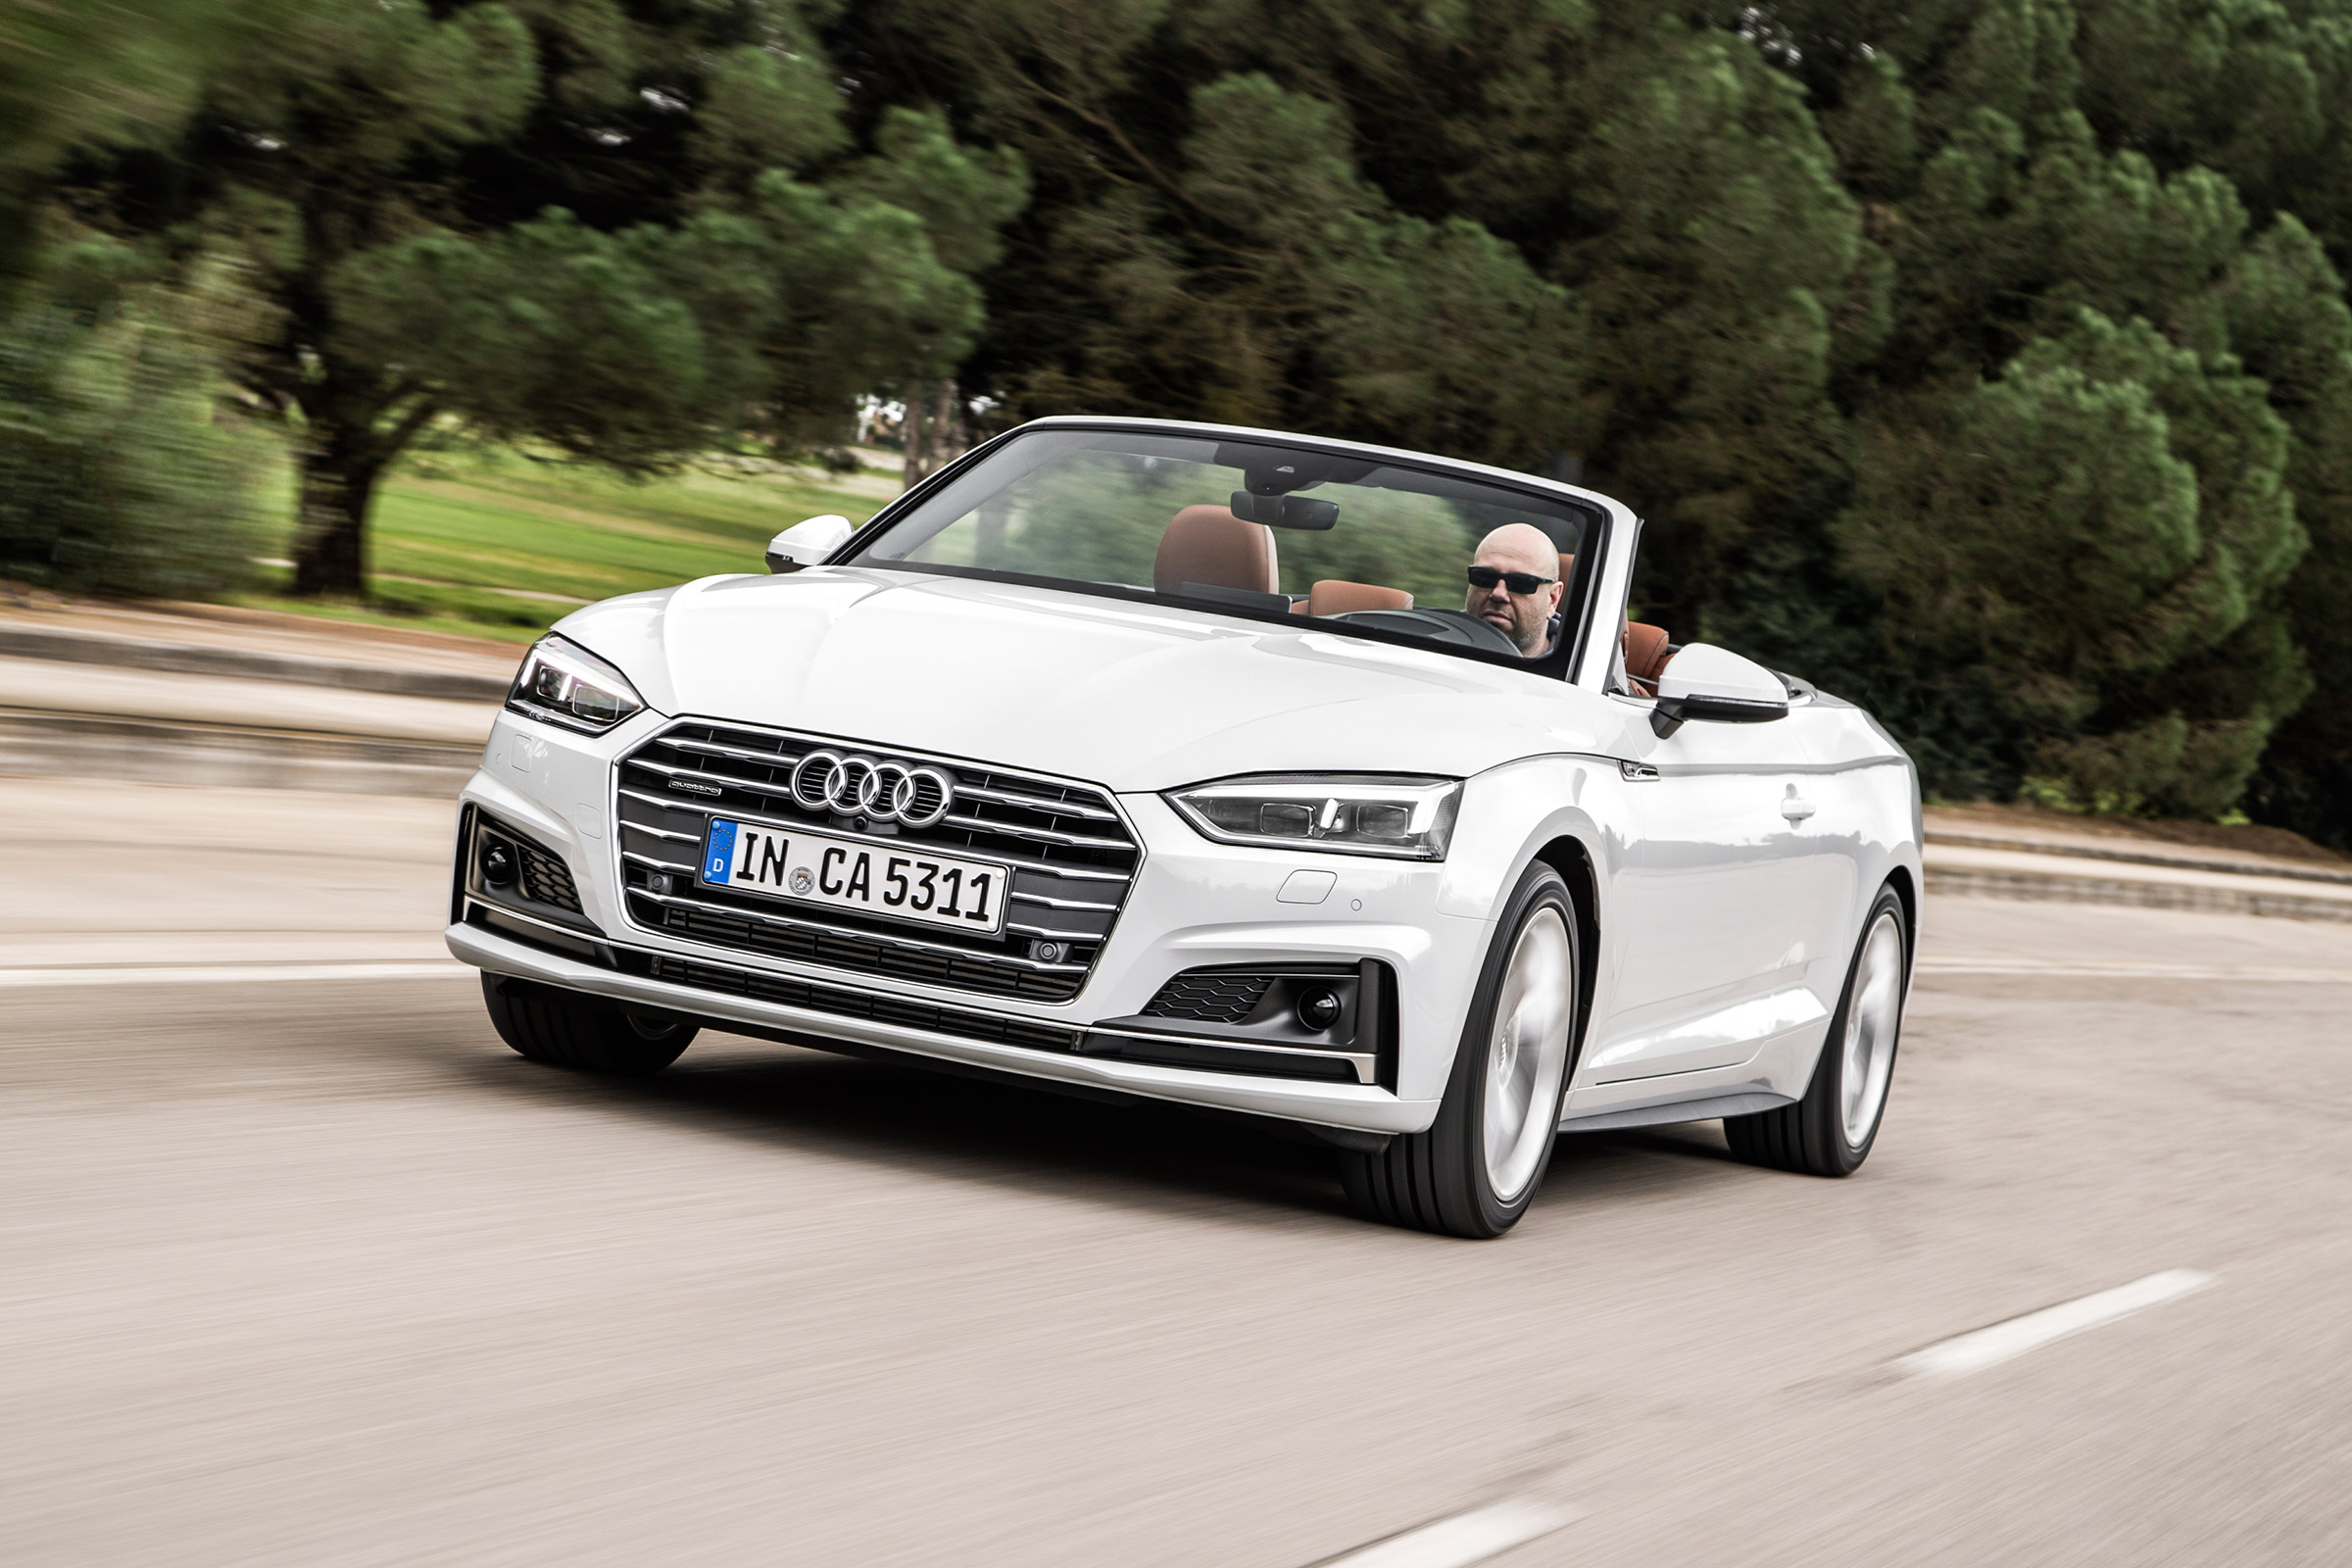 2017 Audi A5 Cabriolet Test Drive Front View (Photo 16 of 18)